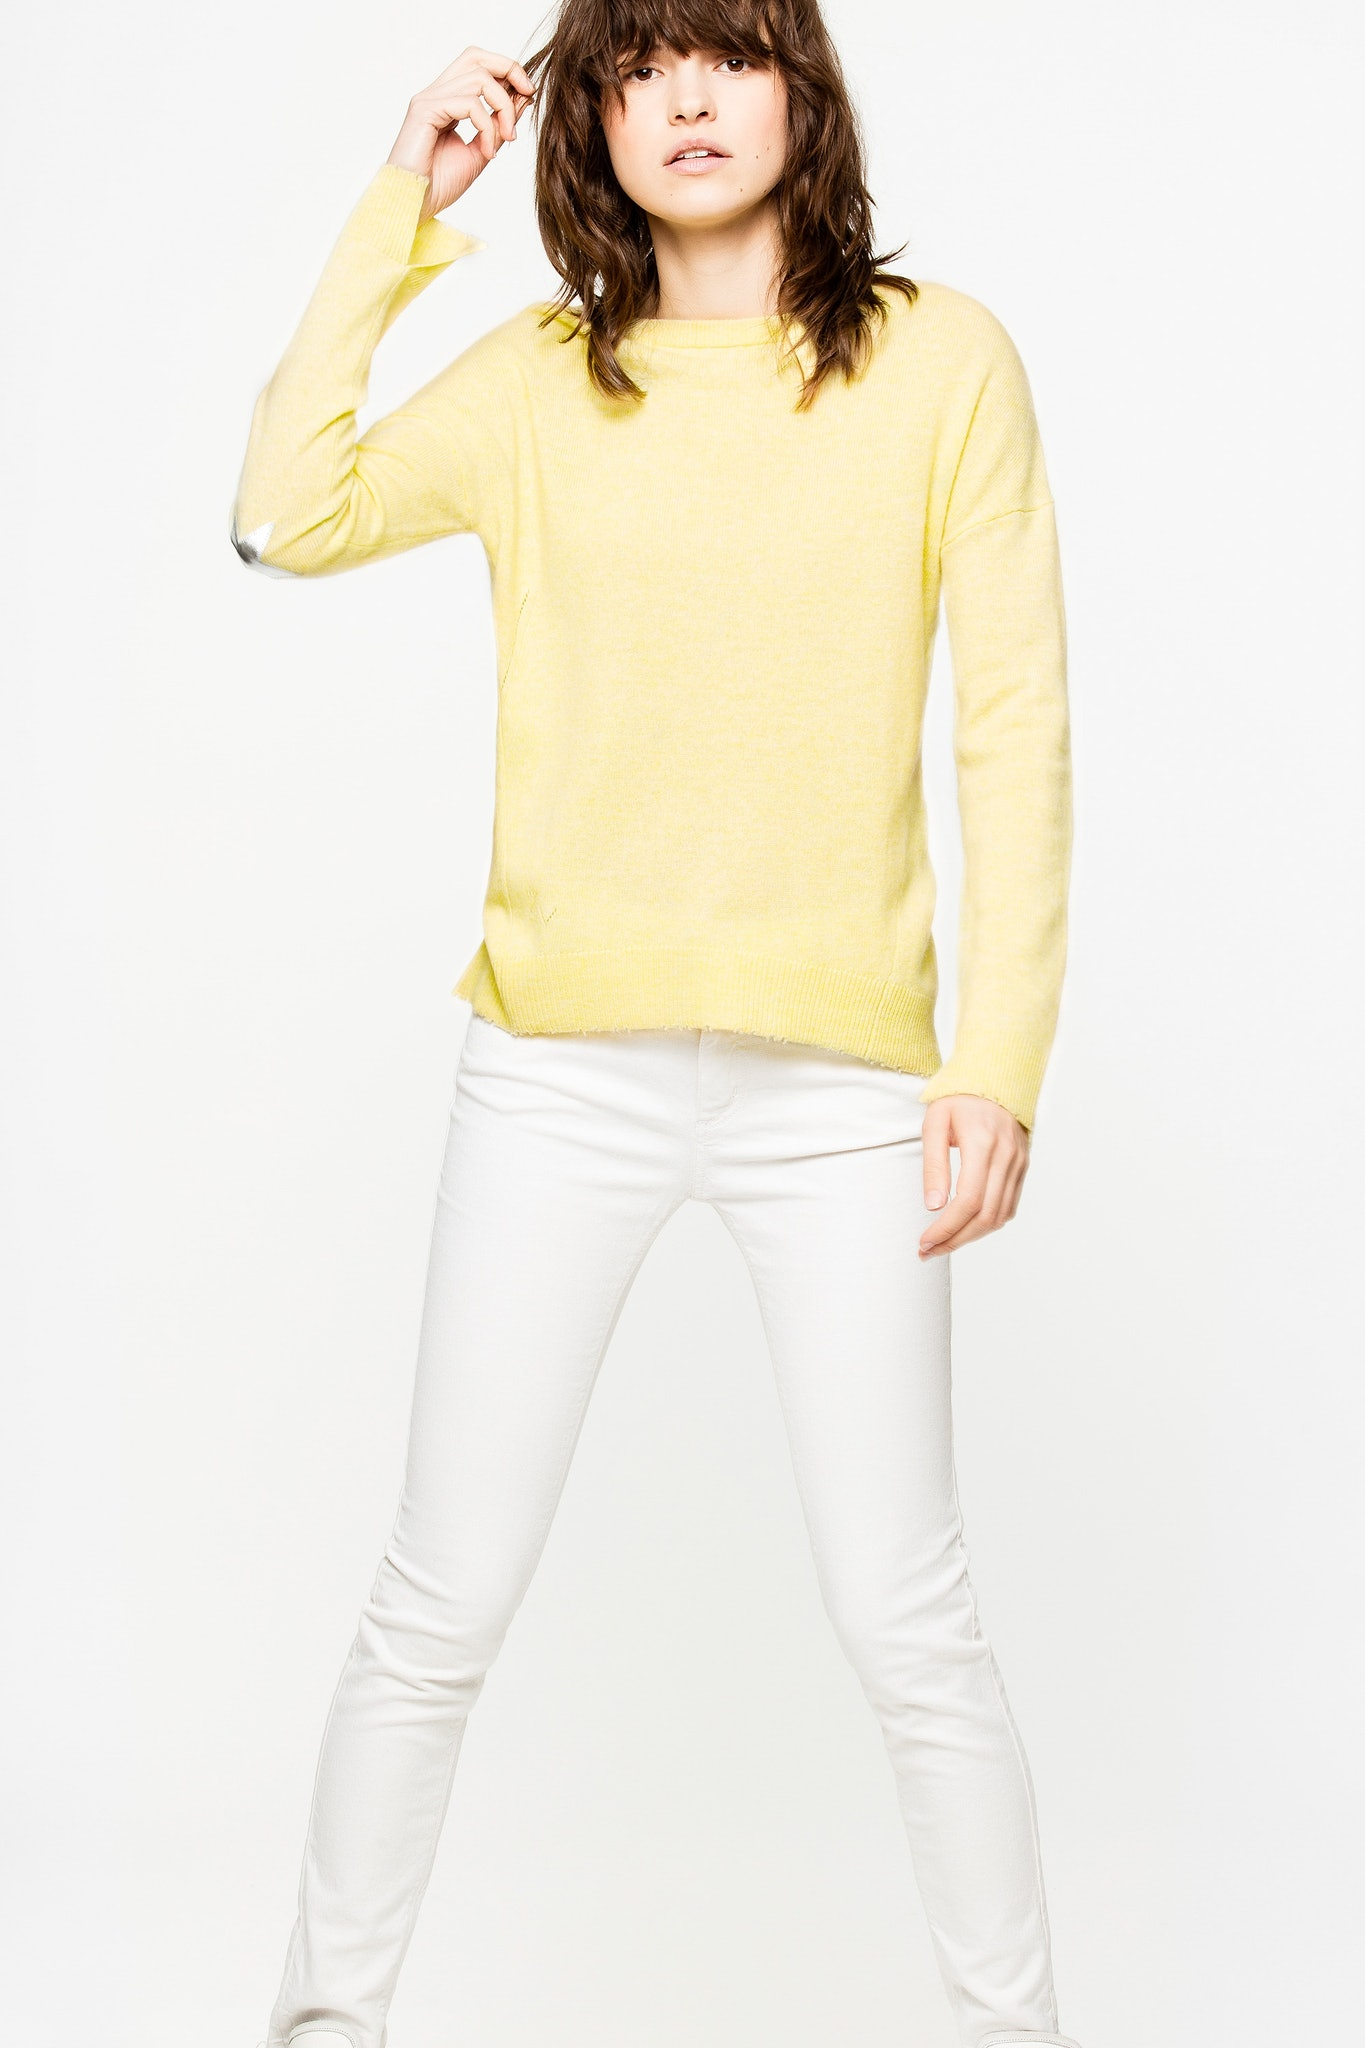 Cici Patch Cachemire Sweater